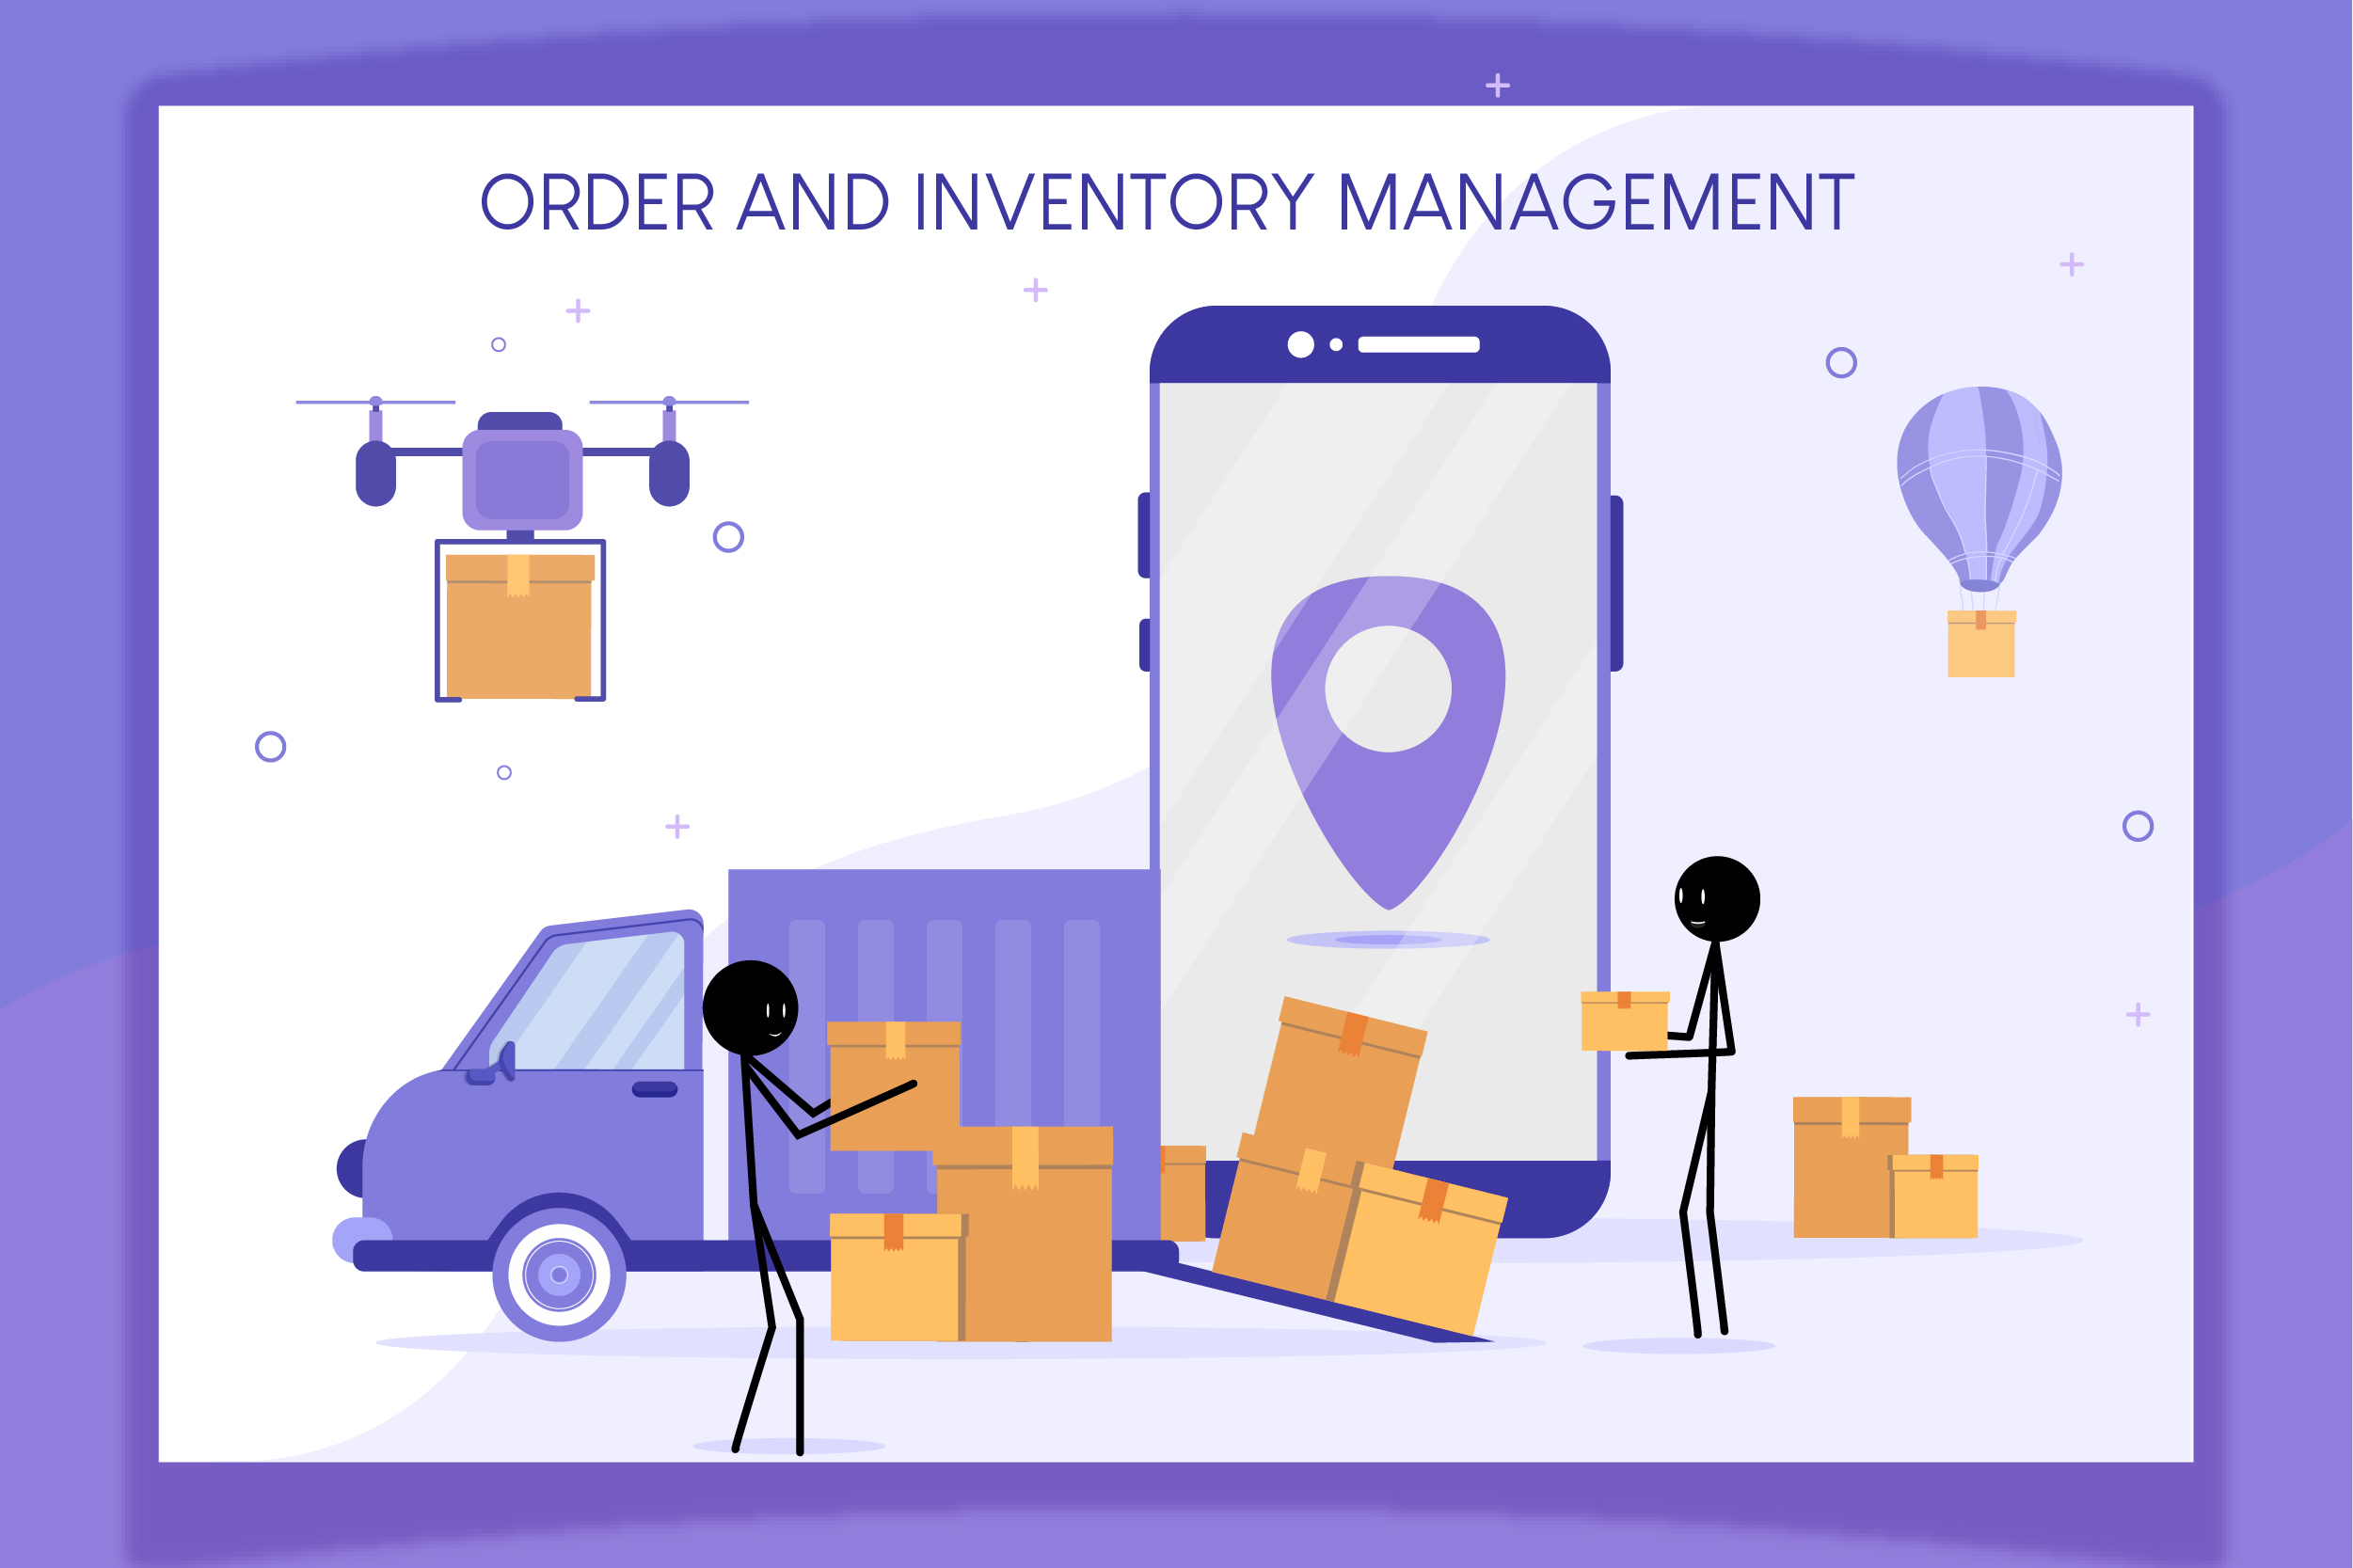 Order and inventory management